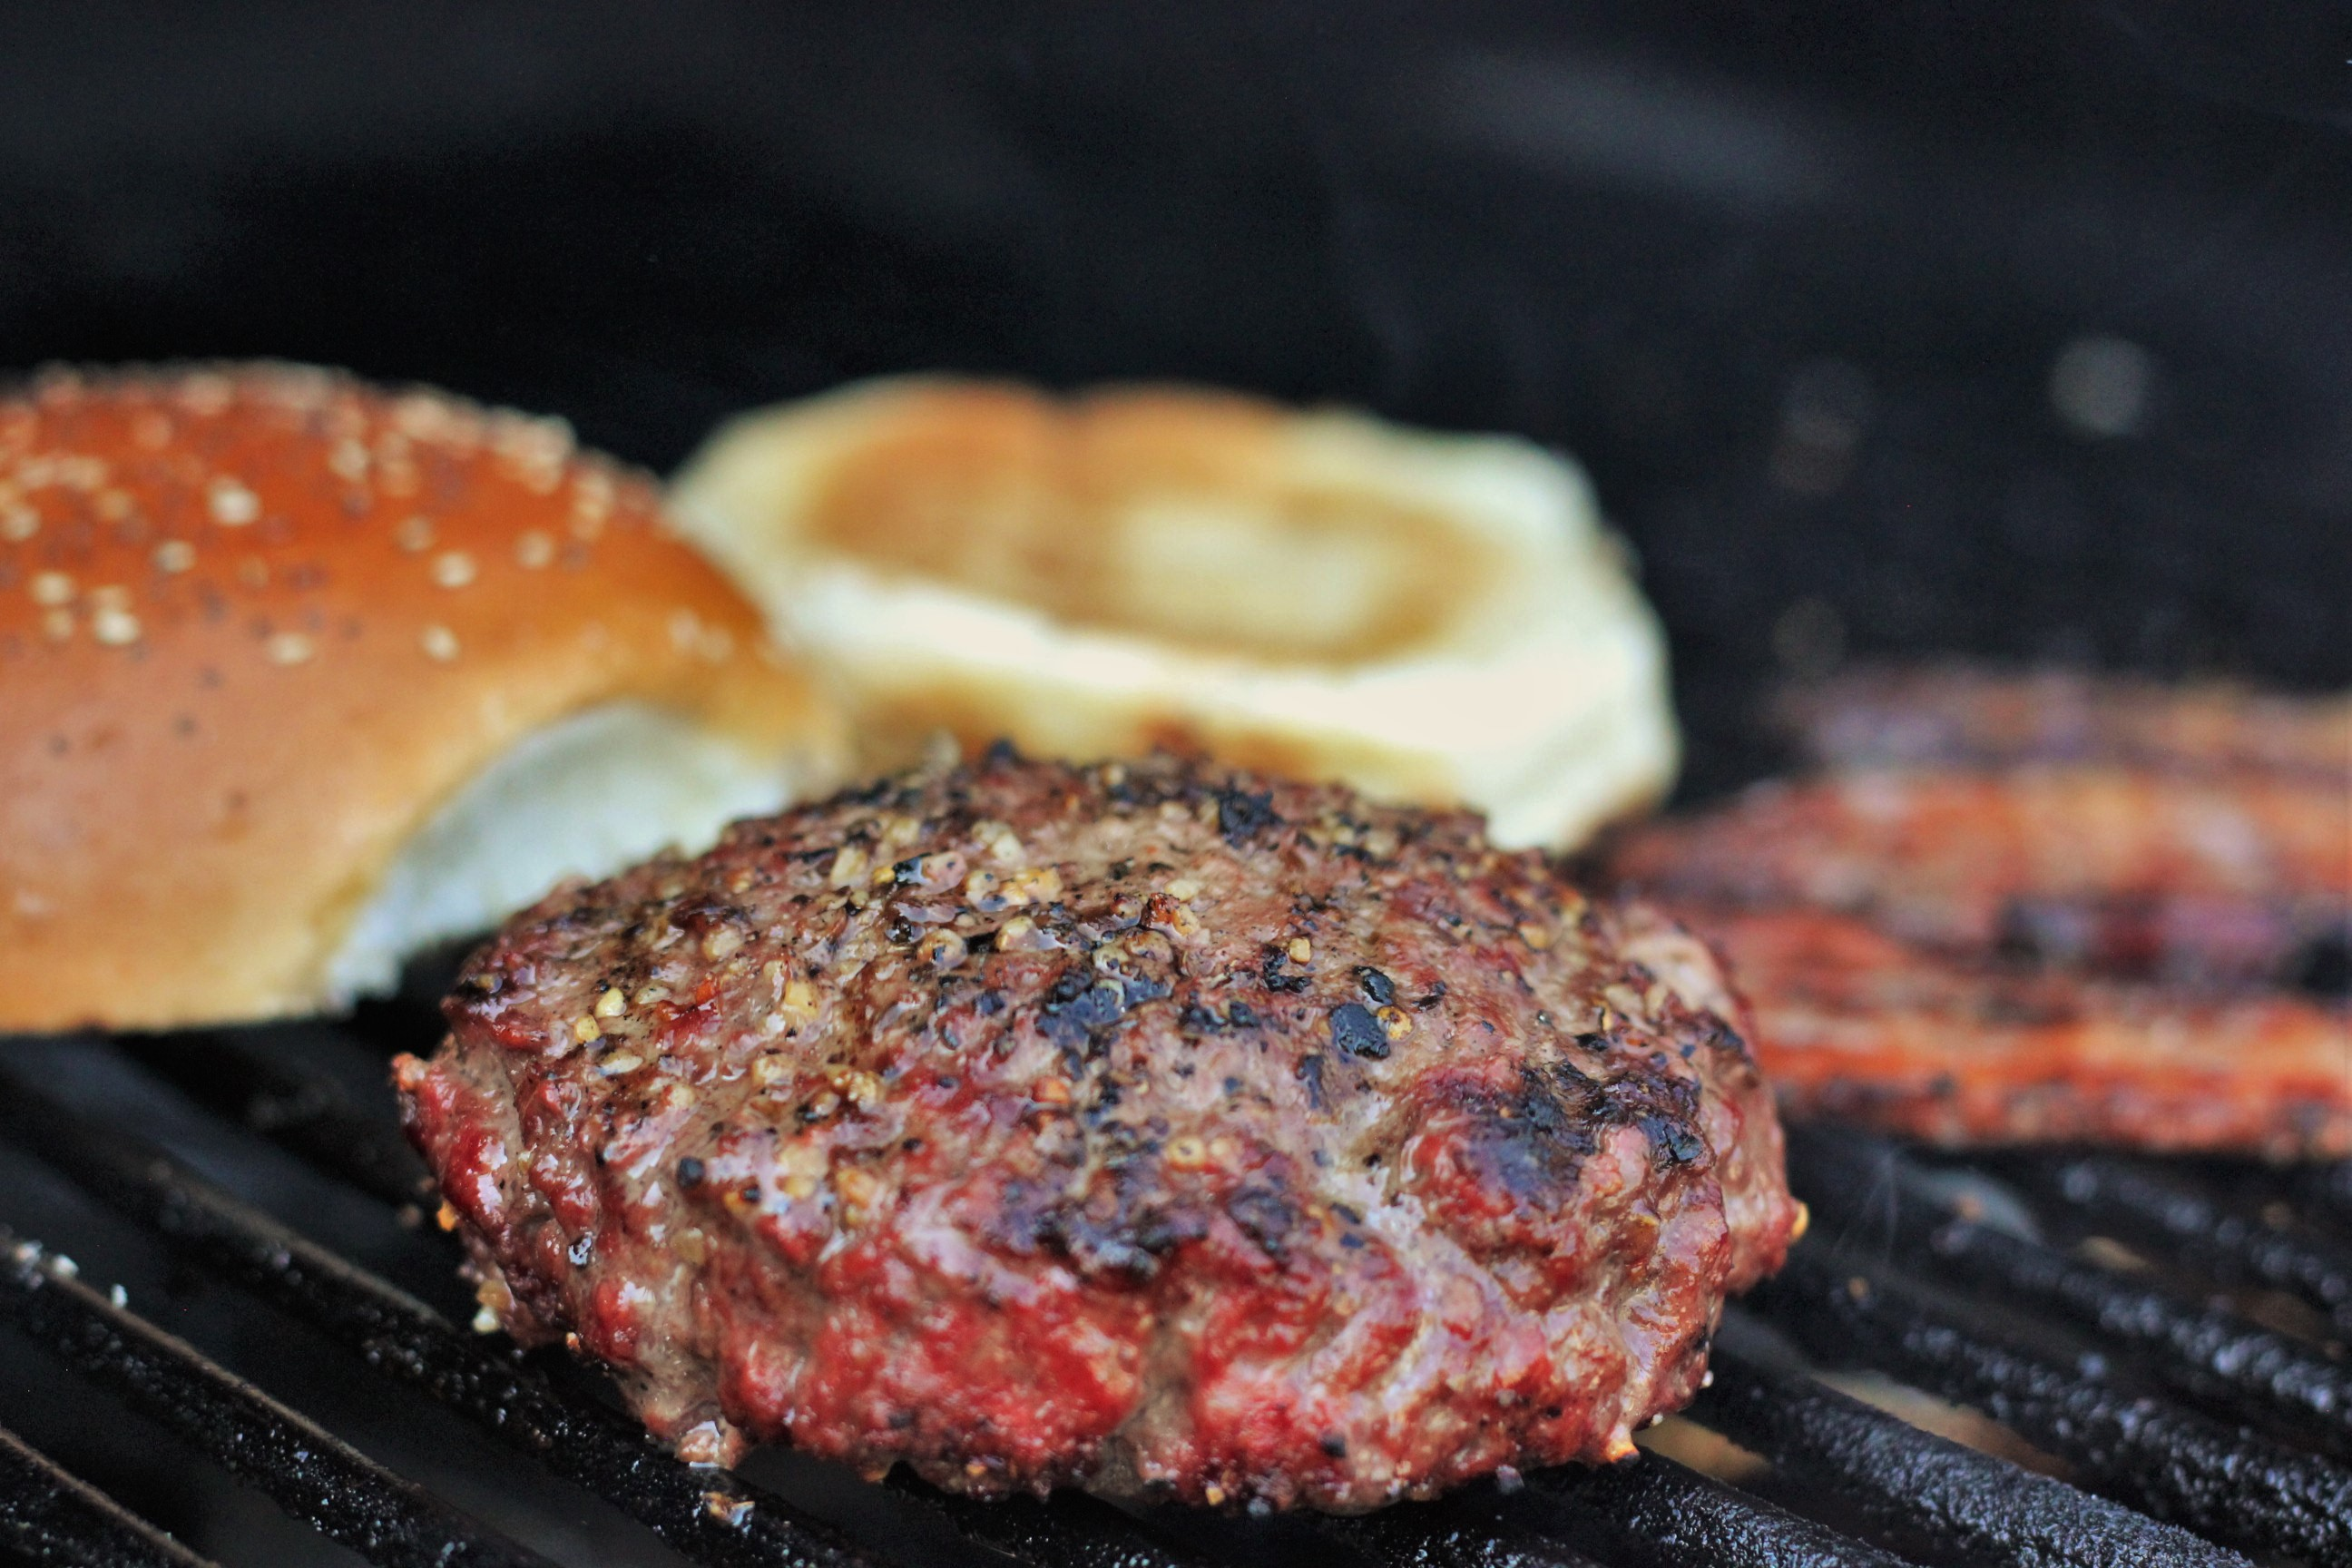 stuffed burger, buns, and bacon on the grill.